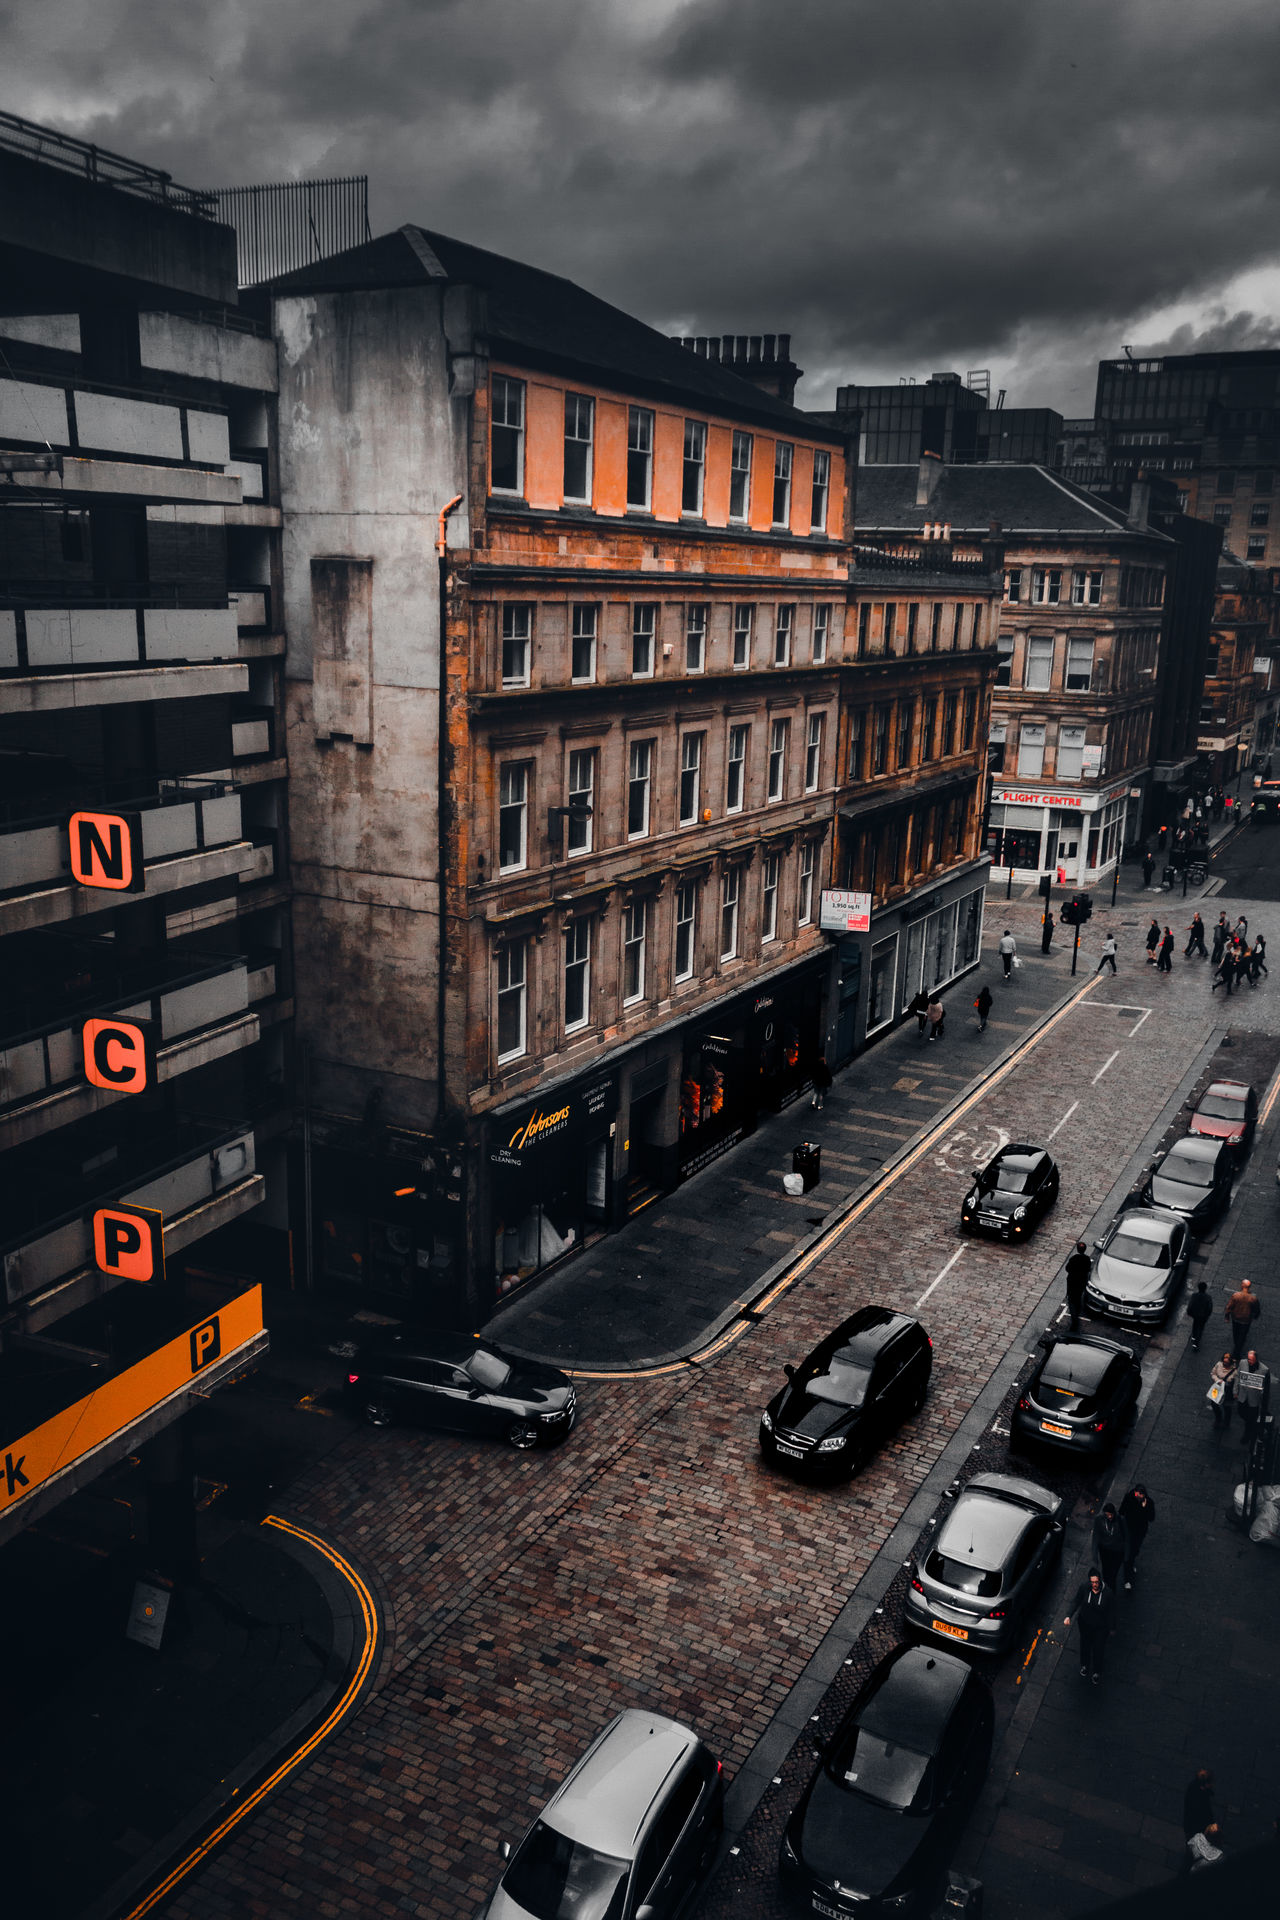 Architecture Building Exterior Built Structure City No People Day Outdoors Sky Travel Destinations New EyeEm Eye4photography  The Architect - 2017 EyeEm Awards The Street Photographer - 2017 EyeEm Awards Architecture City Cityscape Aerial View Freshness Love Walking Buildings Metropolis Pretty Travel